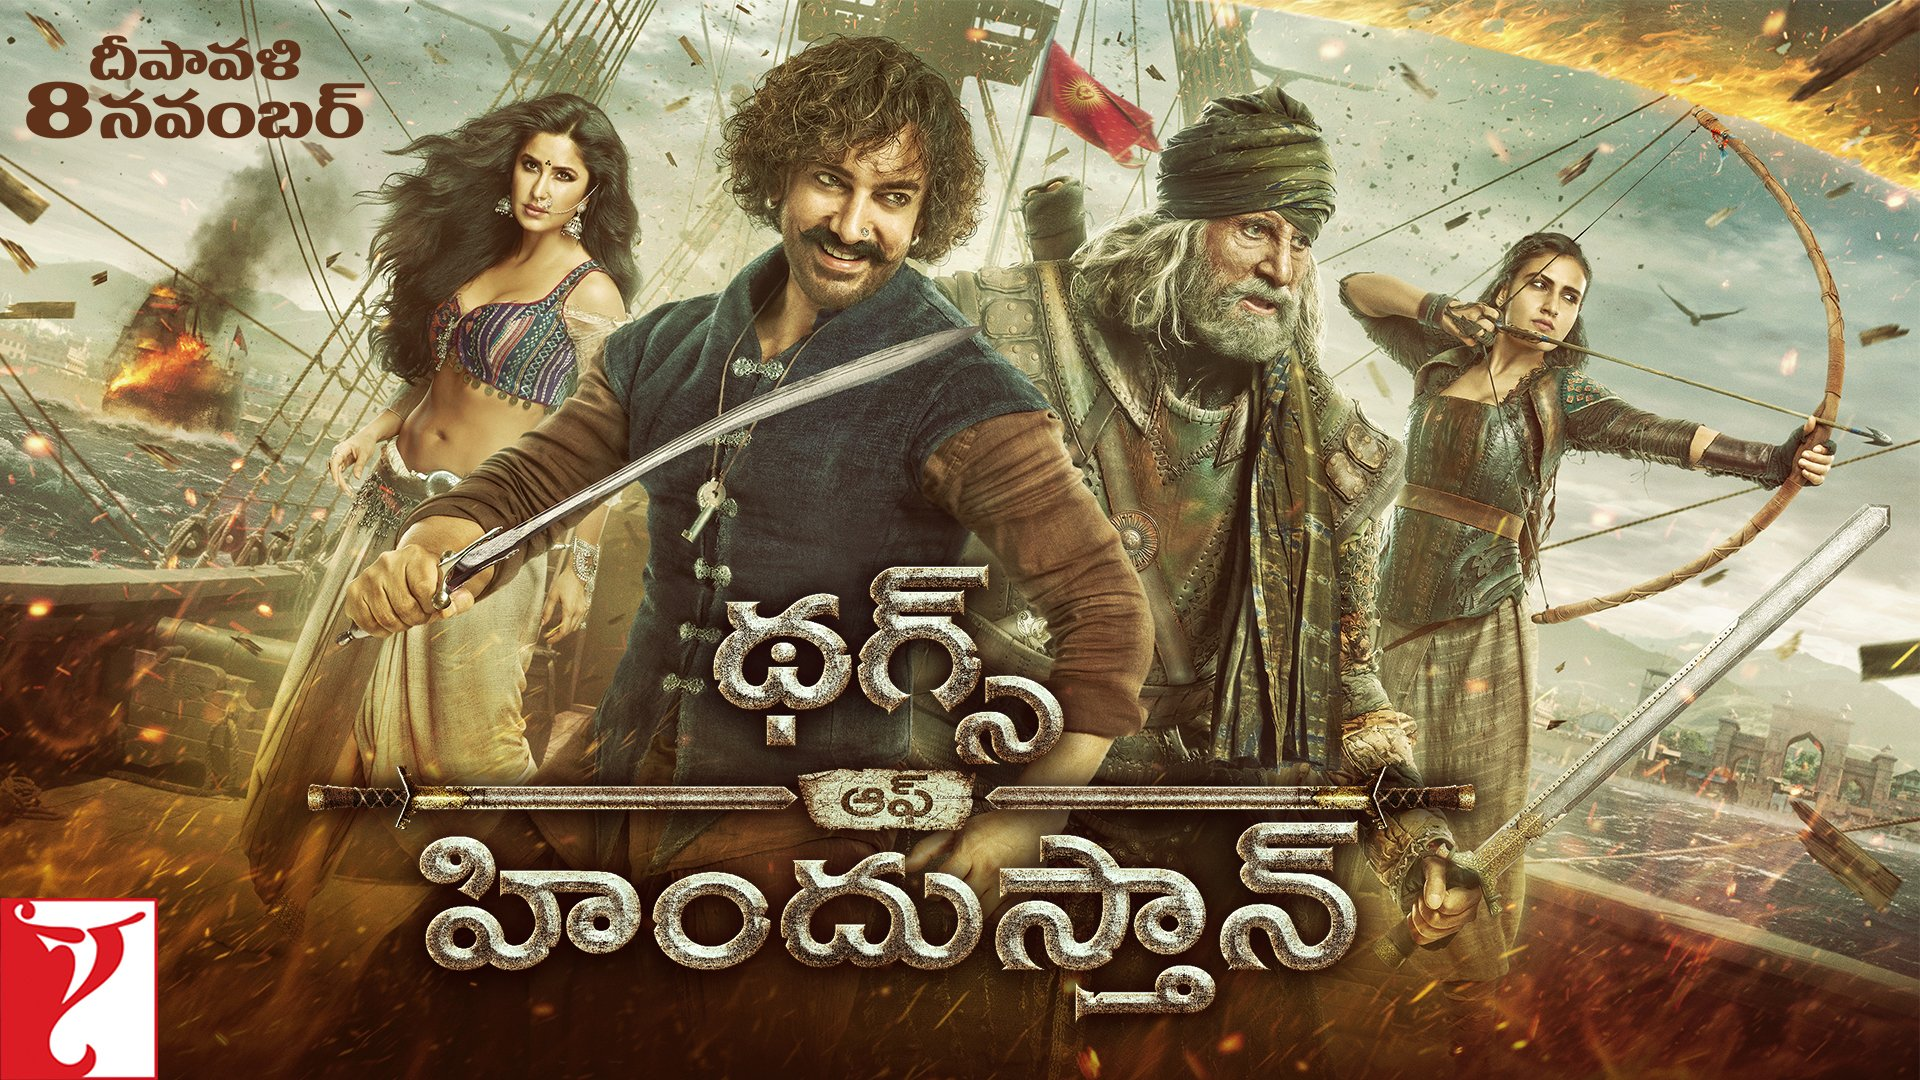 T 2944 -  Telugu:  https://t.co/7CnHH5AVV2  Get ready for the experience of a lifetime. #ThugsOfHindostan releasing… https://t.co/r6lfa8cFC6